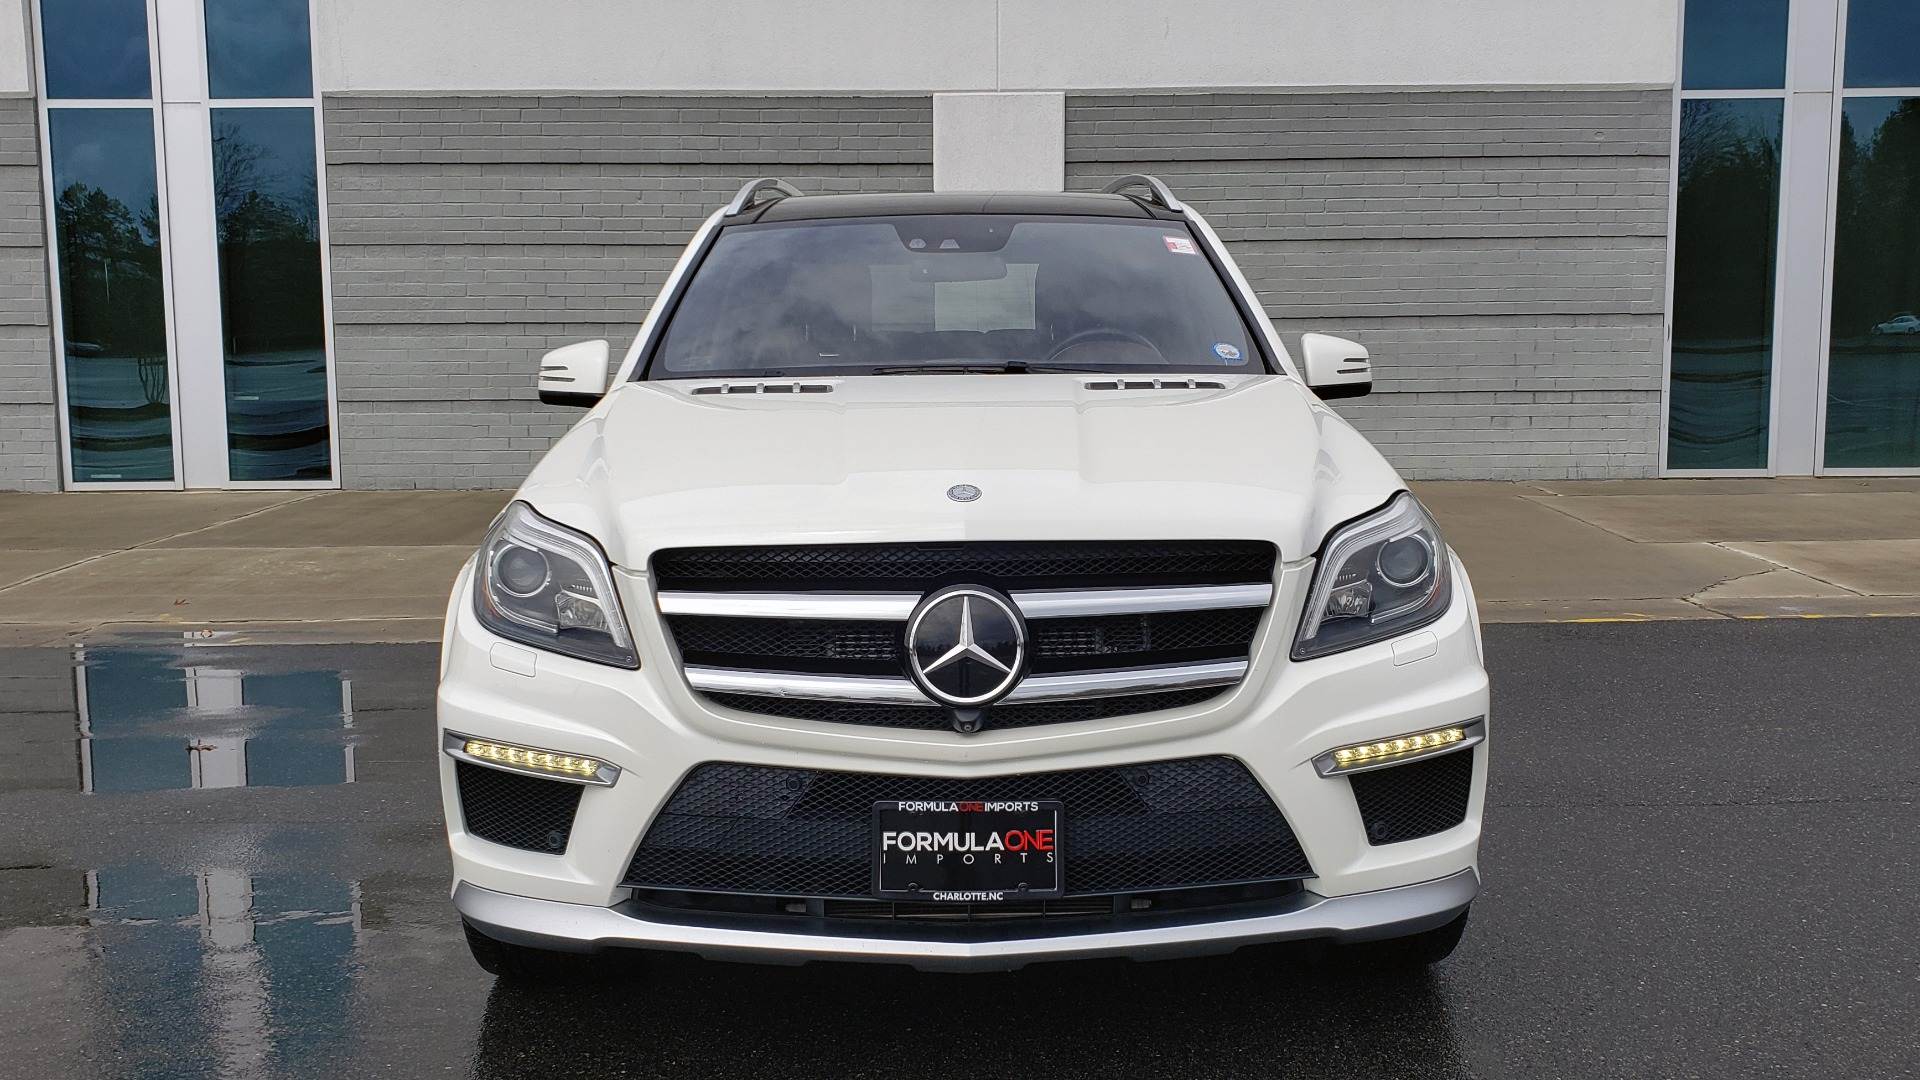 Used 2014 Mercedes-Benz GL-CLASS GL 63 AMG 4MATIC / NIGHT VIEW ASSIST PLUS / BANG & OLUFSEN SND for sale Sold at Formula Imports in Charlotte NC 28227 25